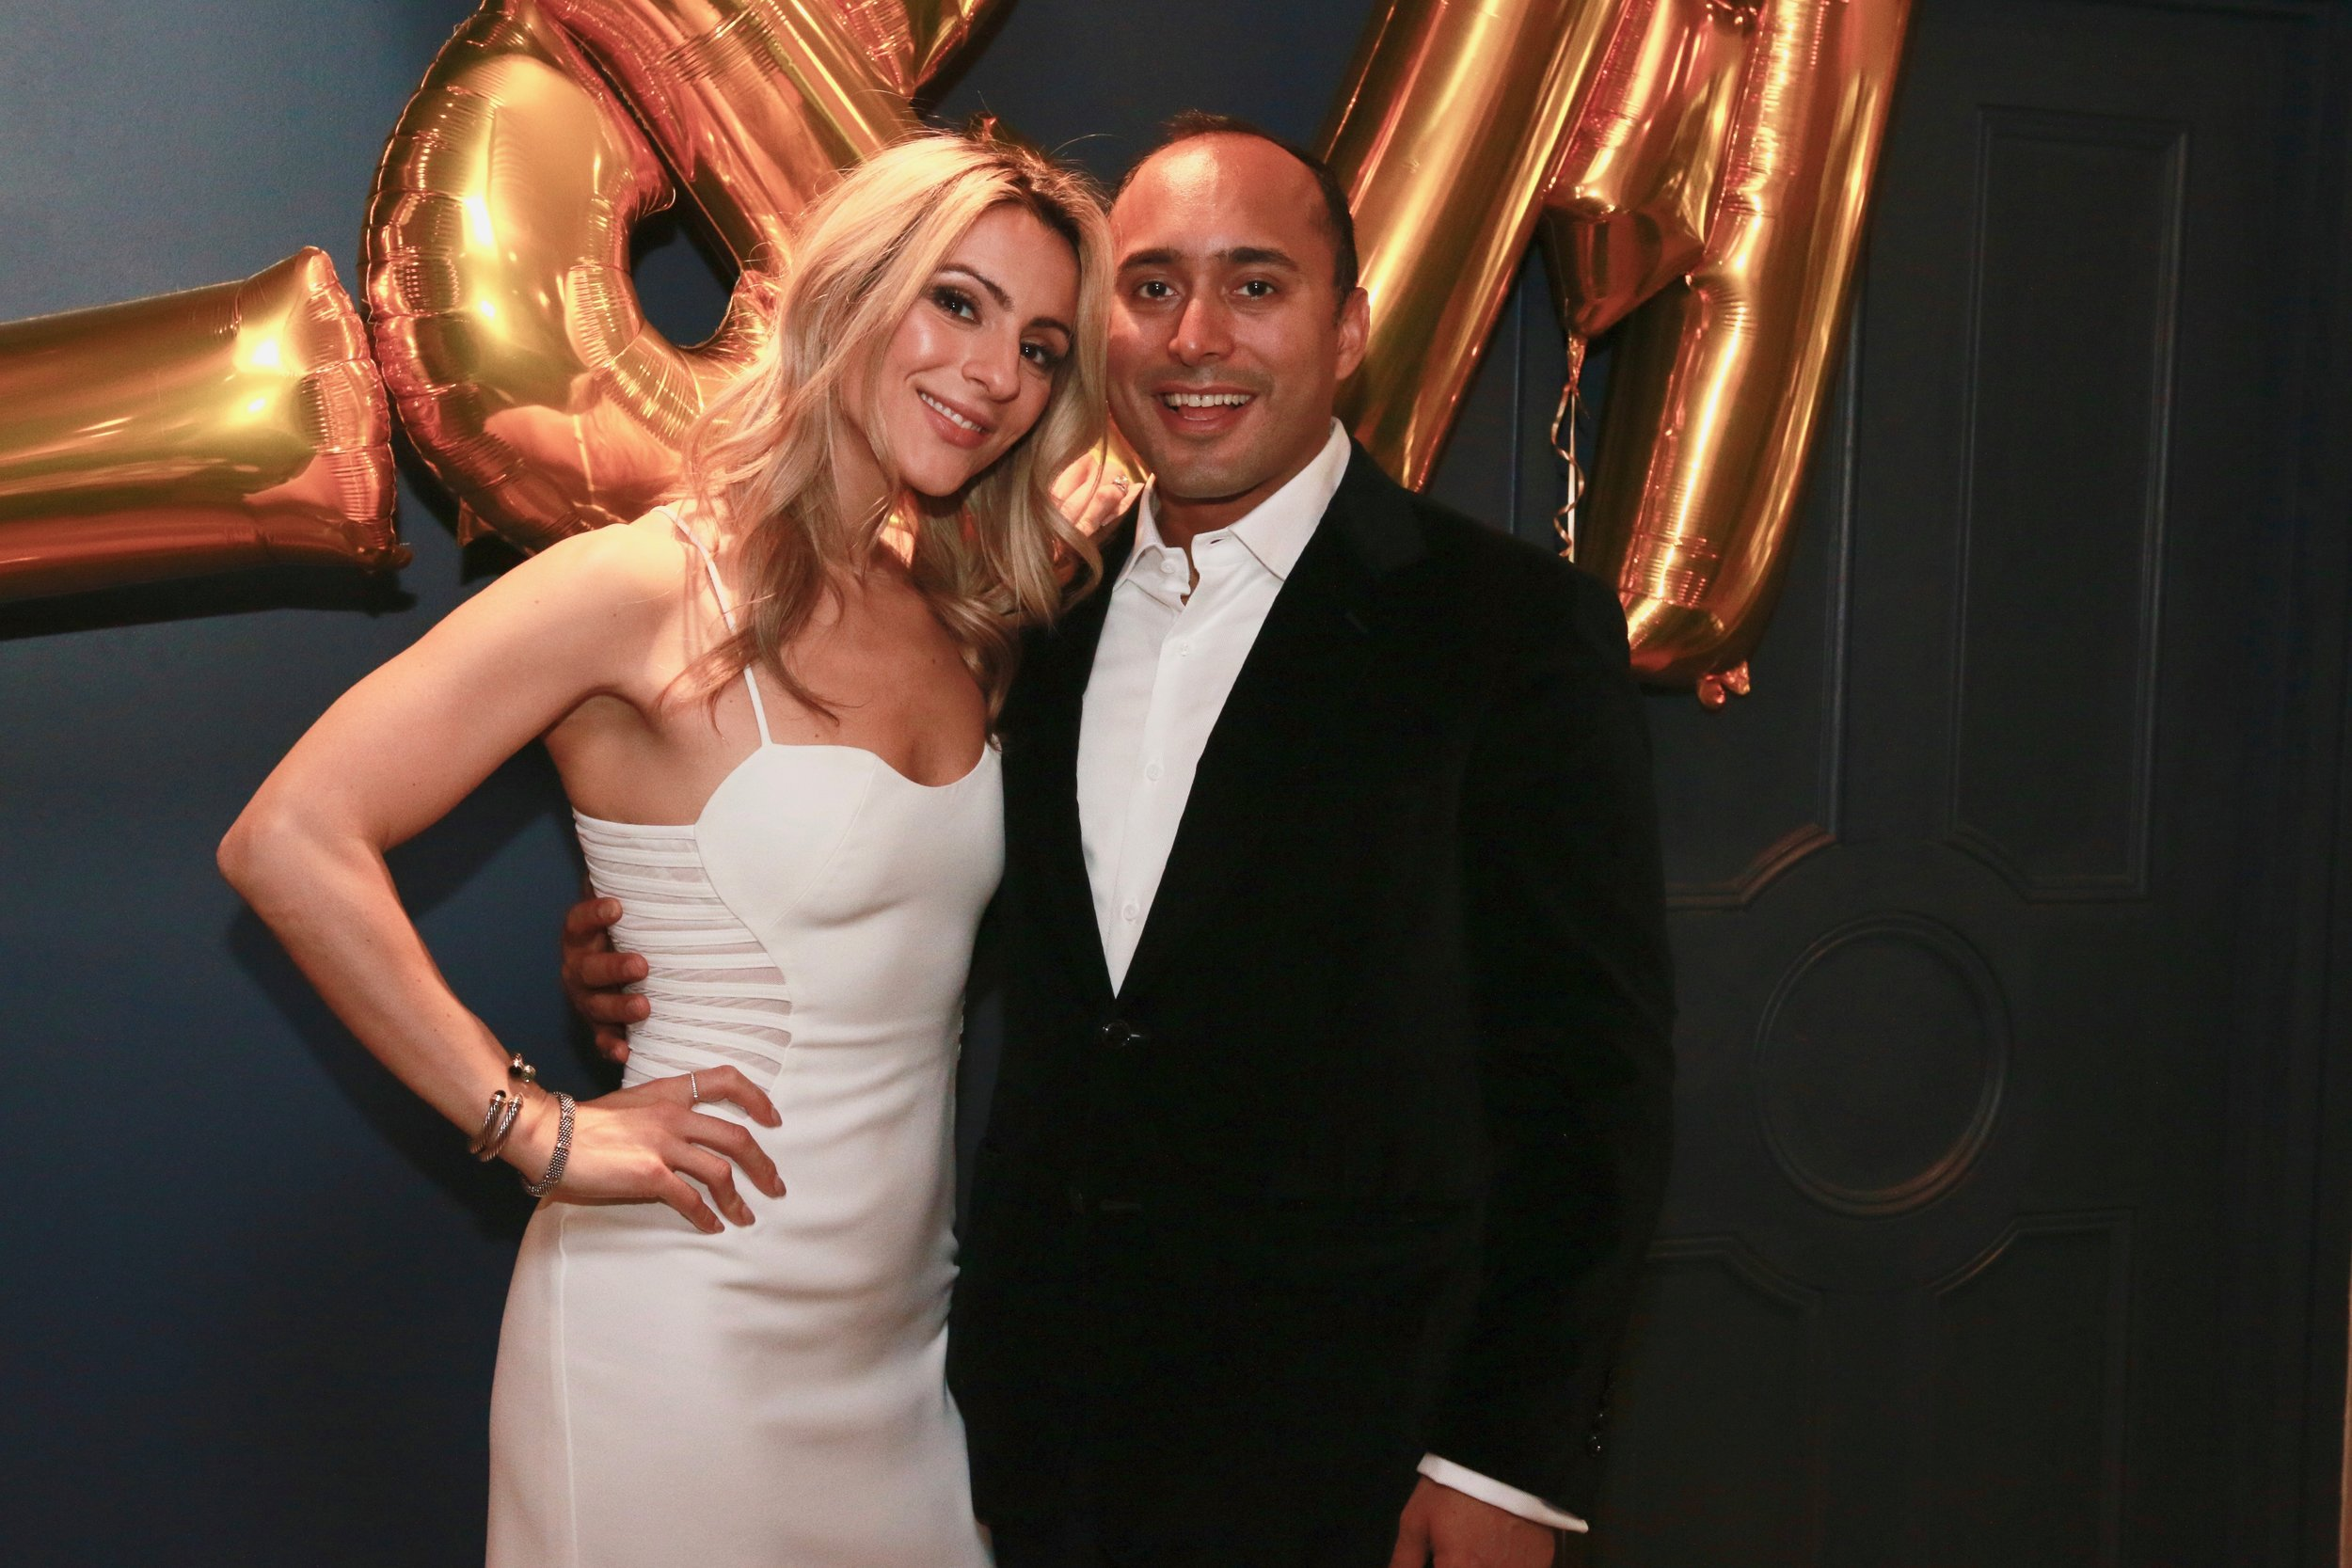 The bride and groom celebrate their wedding at a shower in their honor.Destination Wedding Planner Andrea Eppolito is based in Las Vegas.